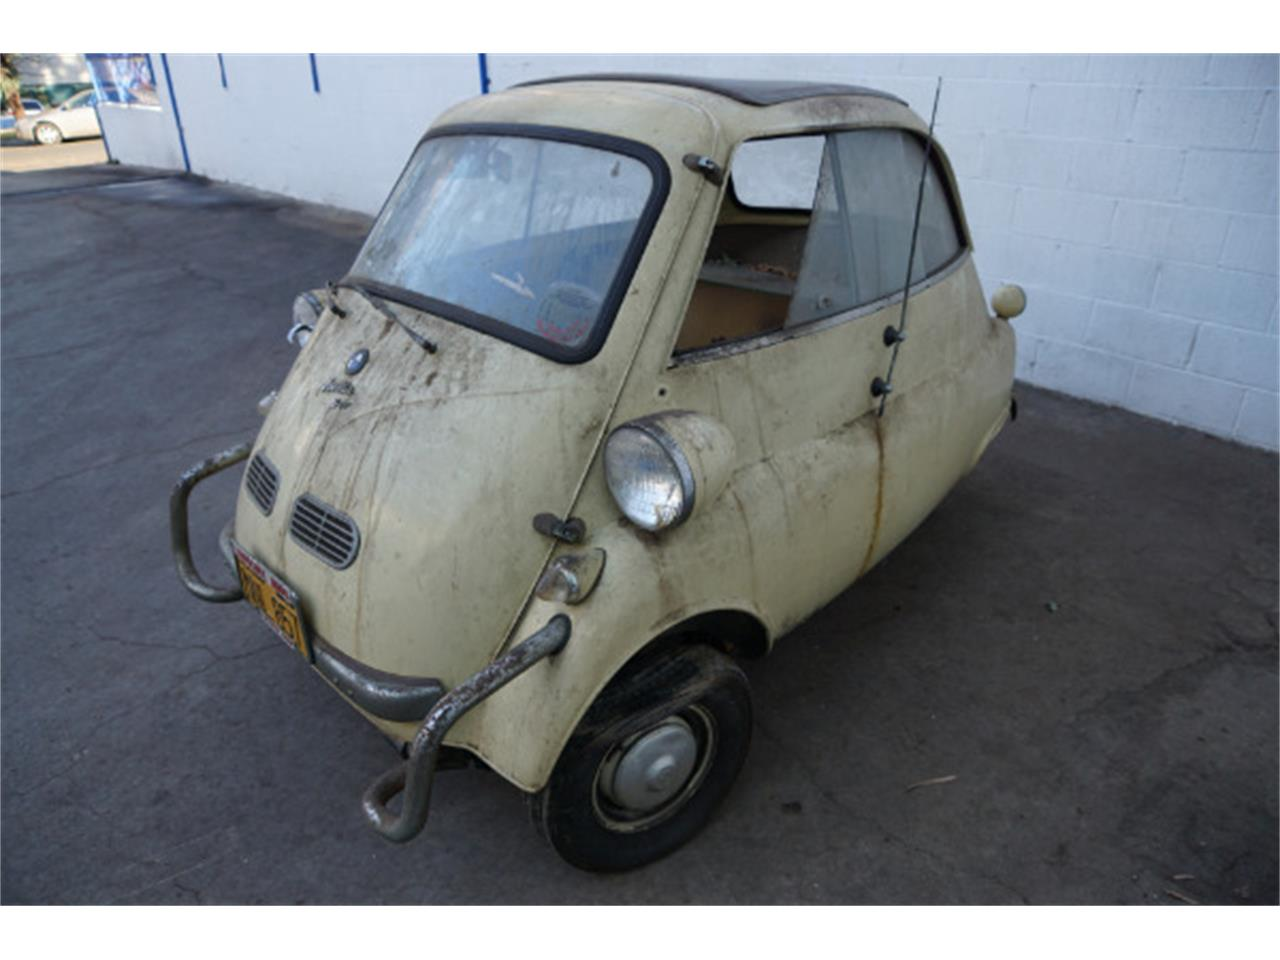 1957 BMW Isetta for Sale   ClassicCars com   CC 1066076 Large Picture of  57 BMW Isetta located in California    29 500 00   MUL8